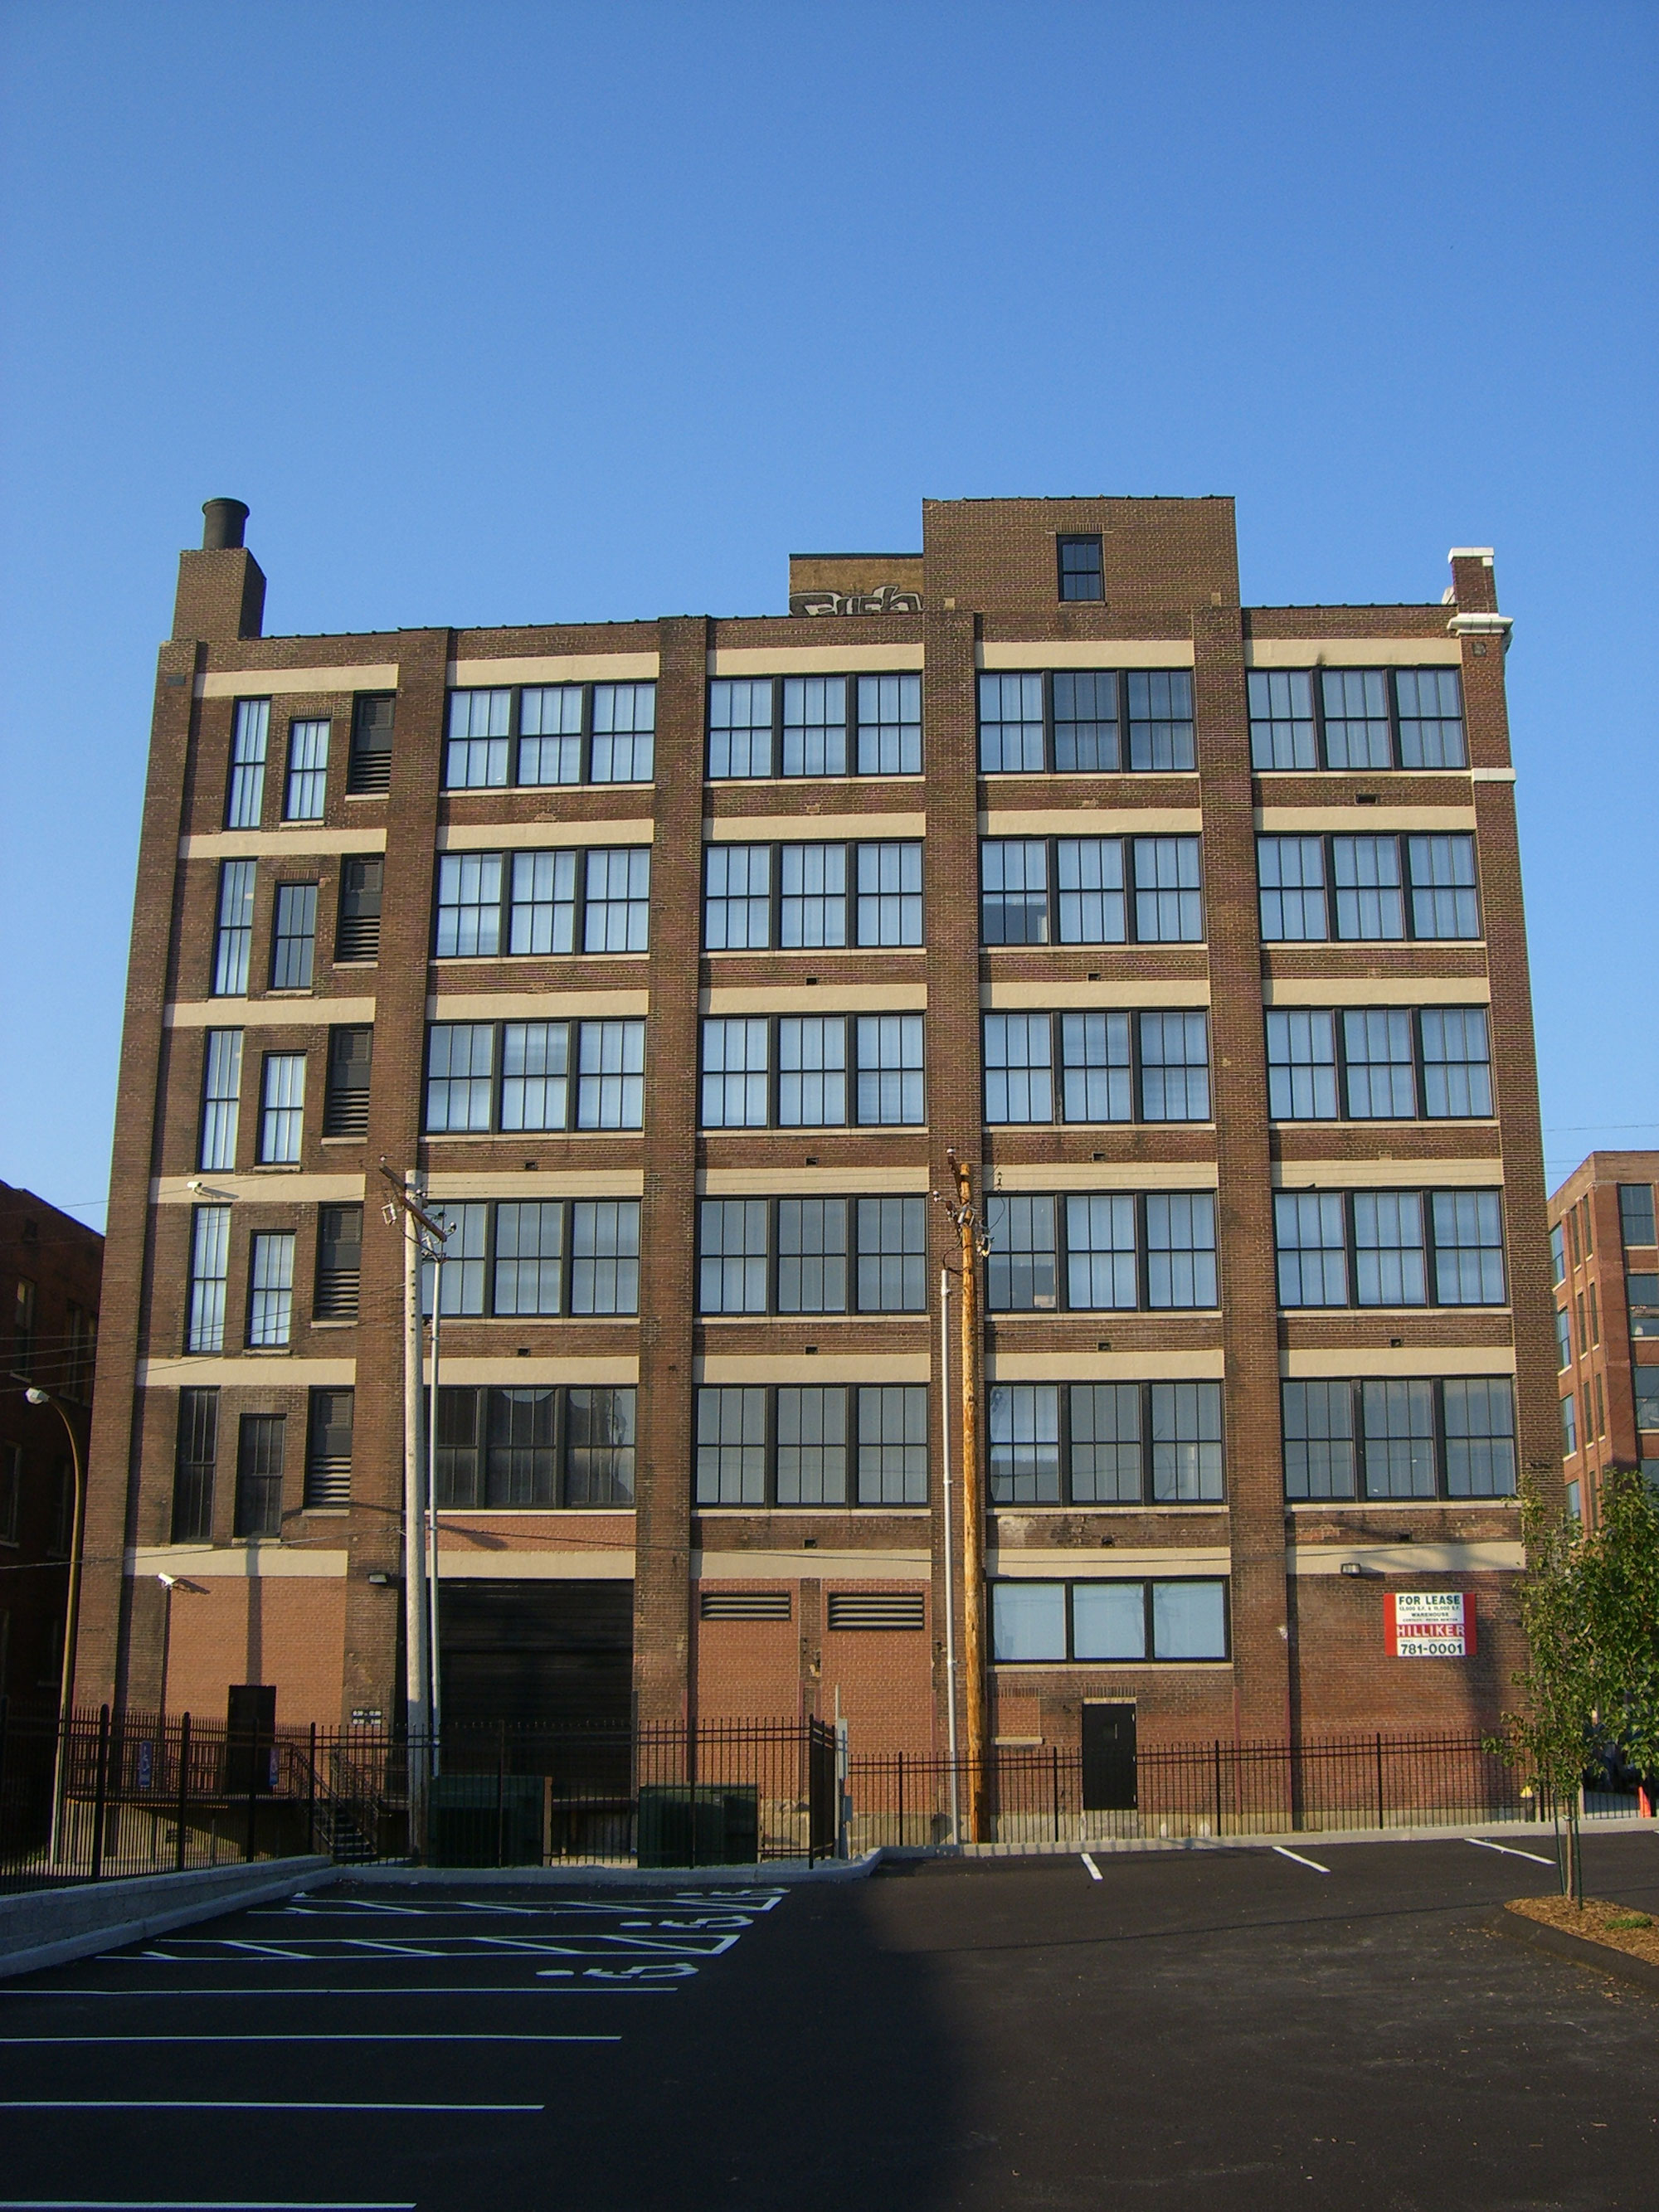 PARIC Corp was in charge of the construction of the redevelopment of the Elias Haas building.